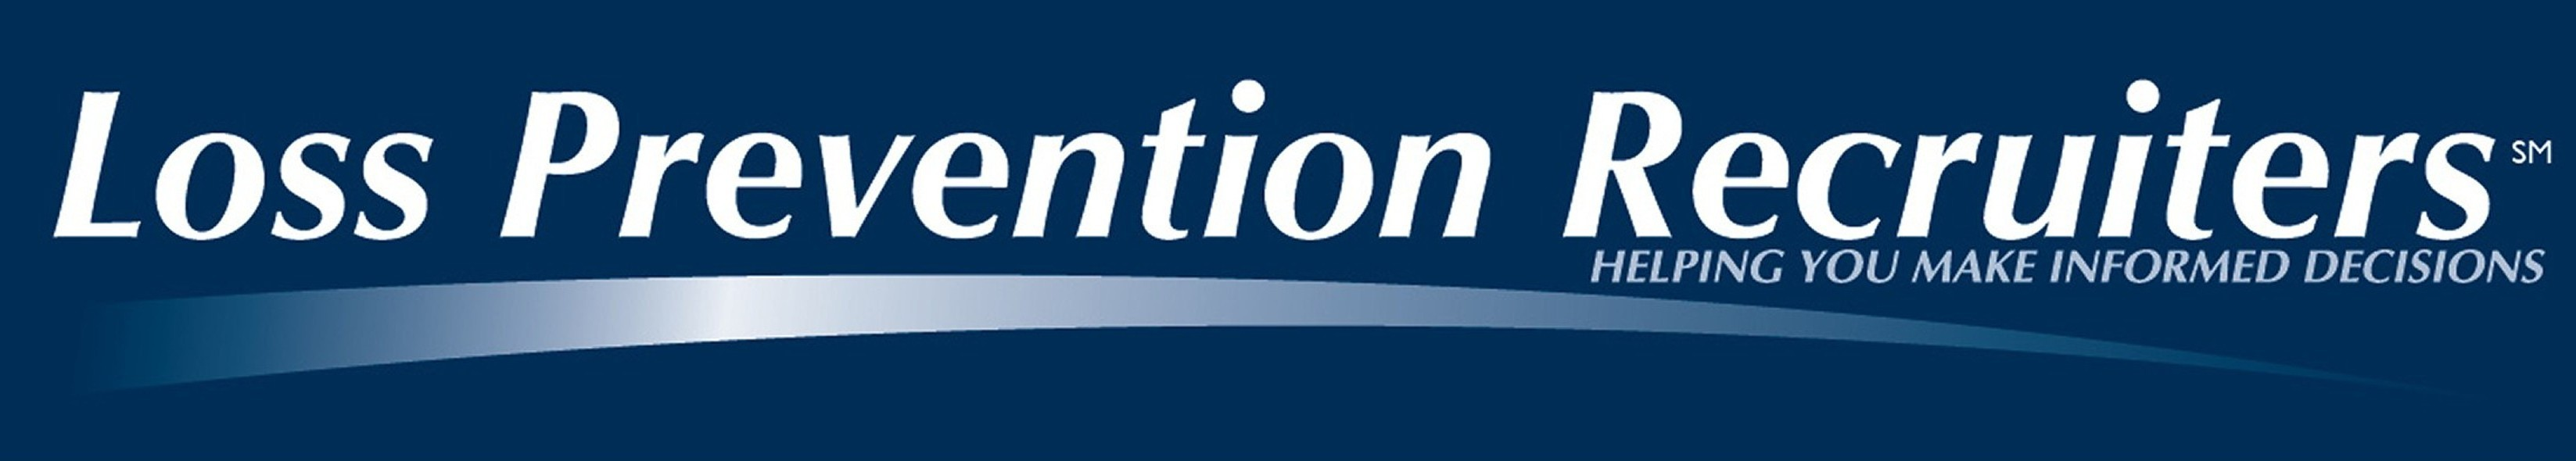 Loss Prevention Recruiters, Logo